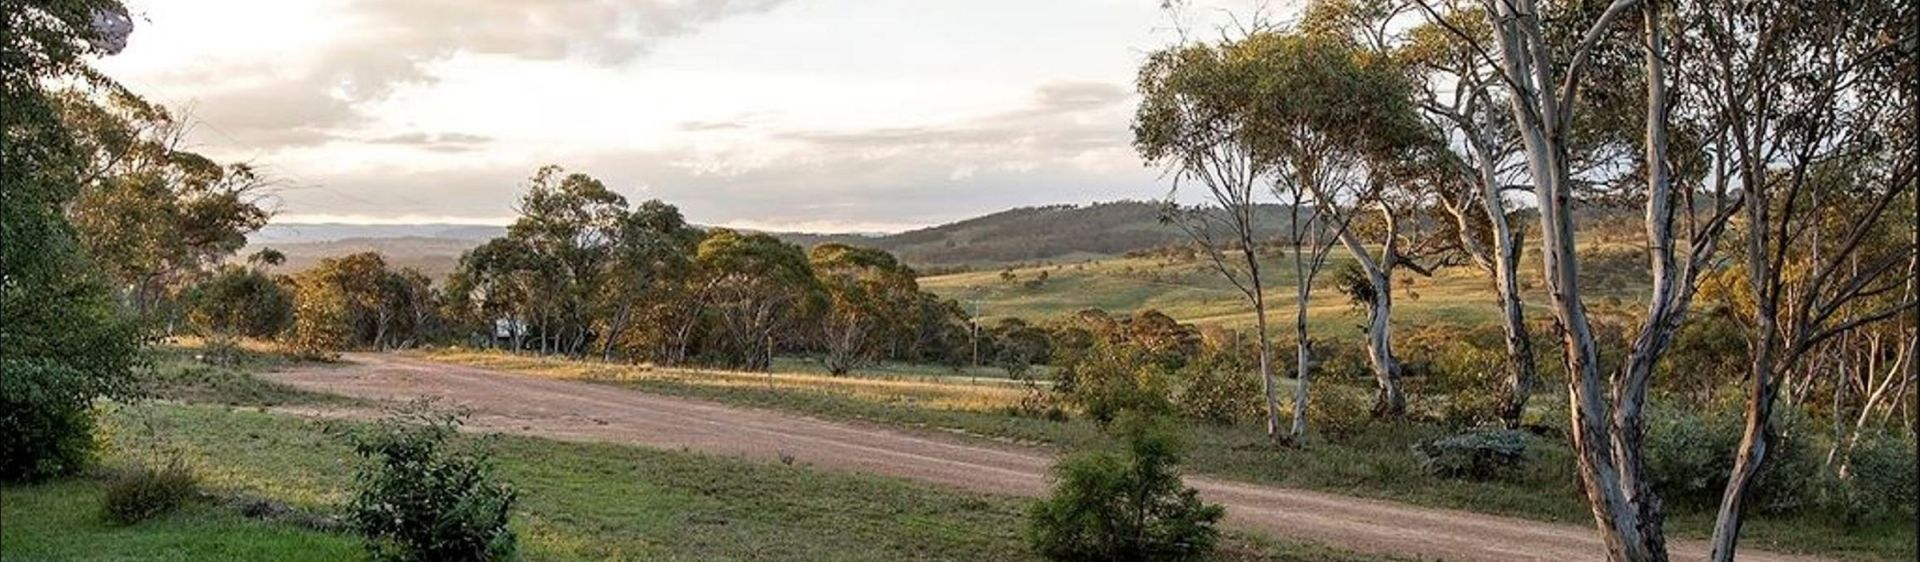 The view from The Lodge, The Range accommodation, Berridale